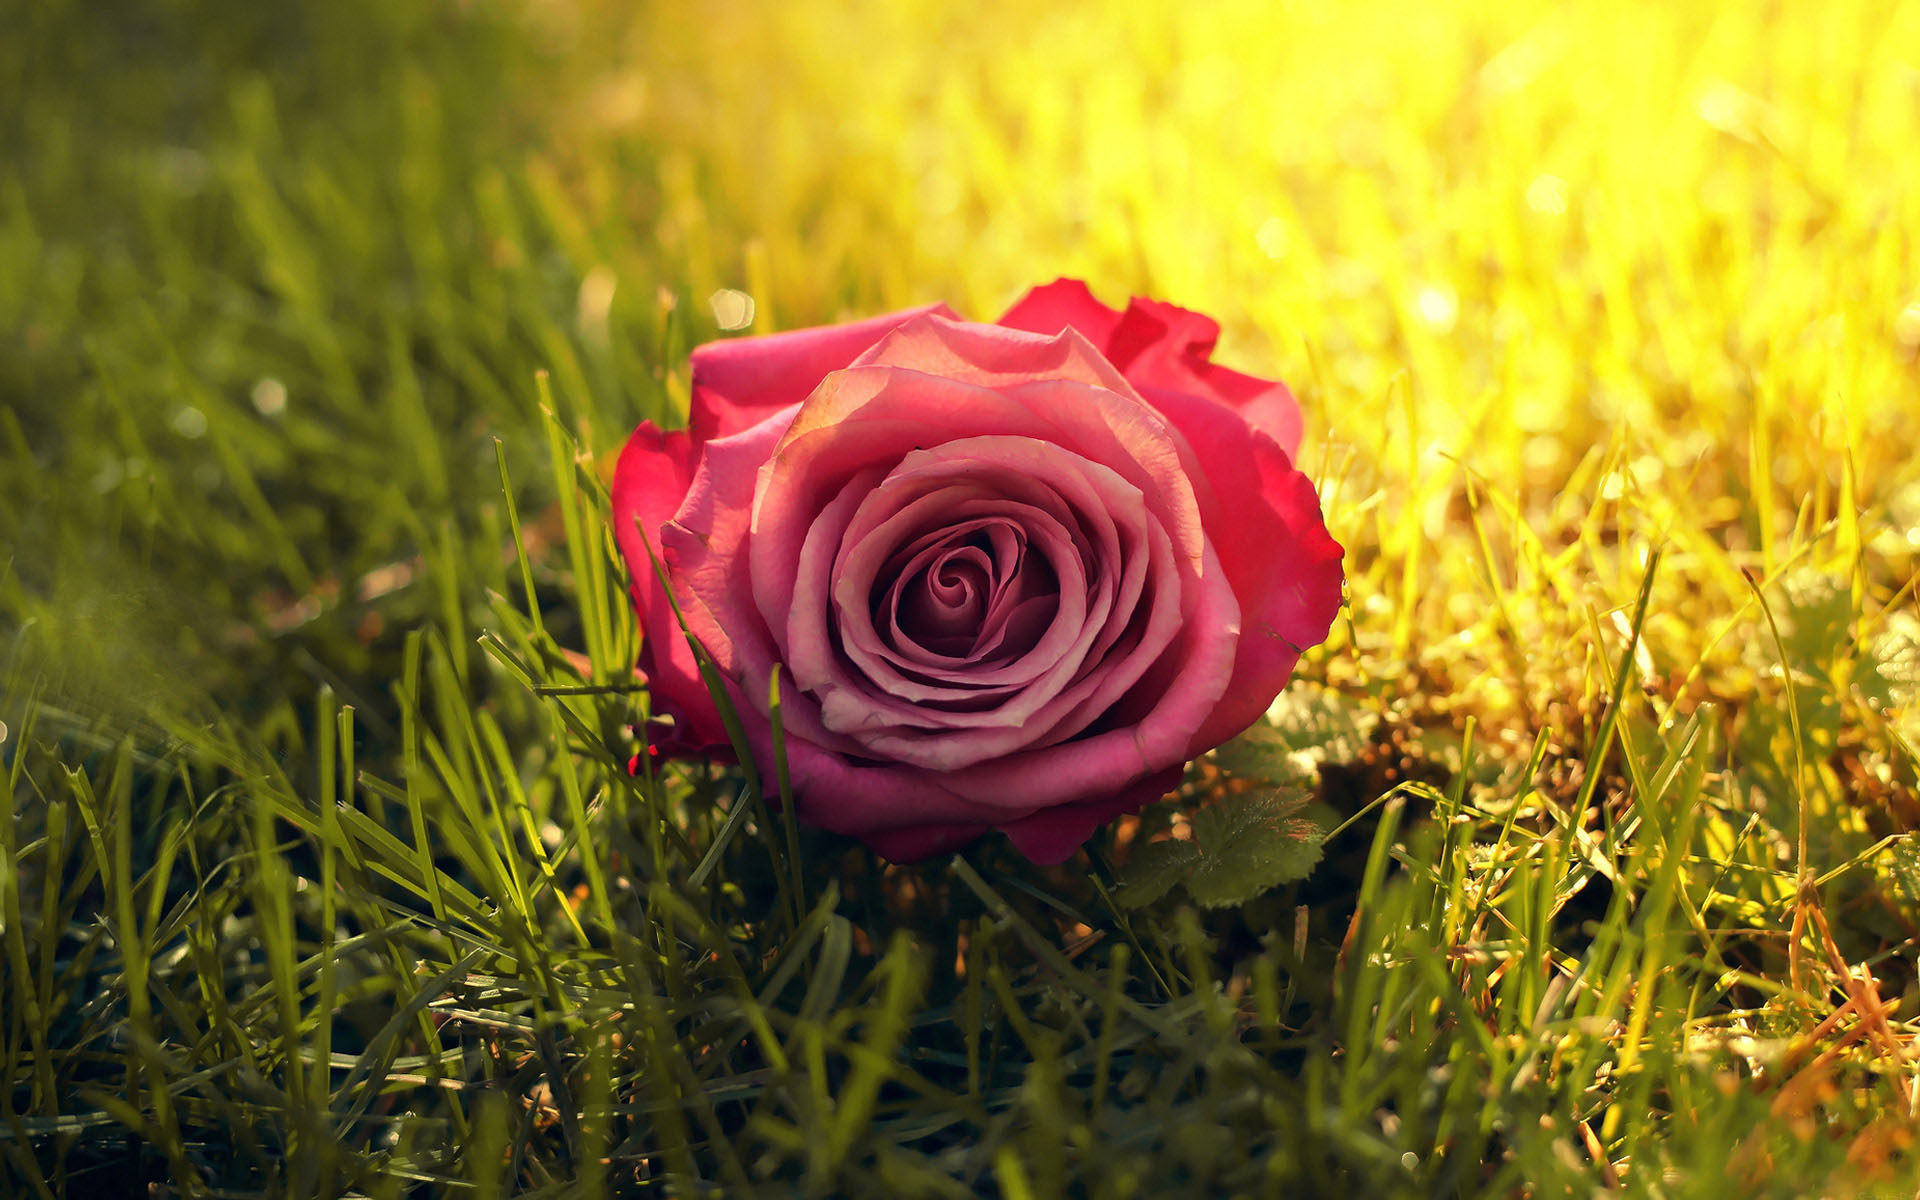 Rose Flower Wallpaper 4k